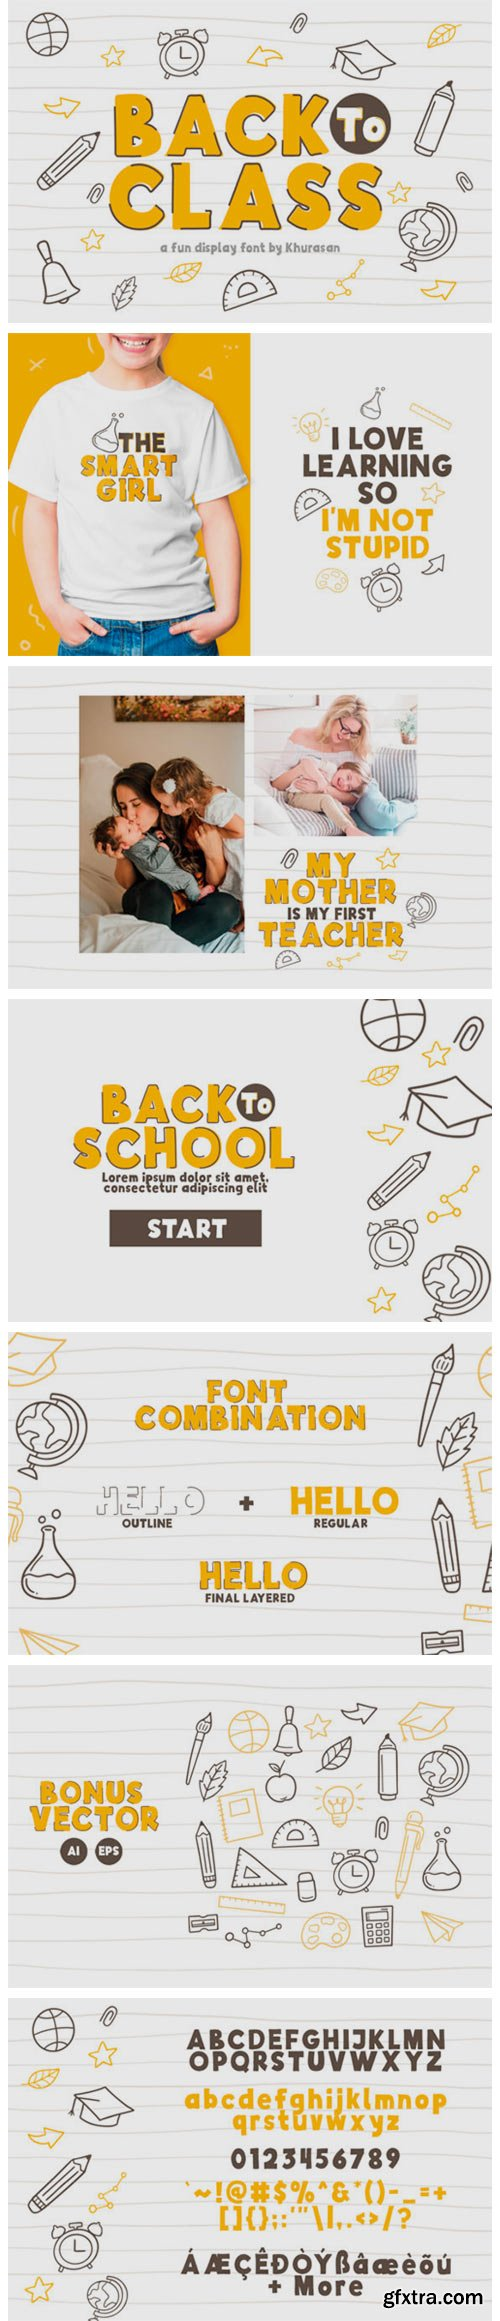 Back to Class Font